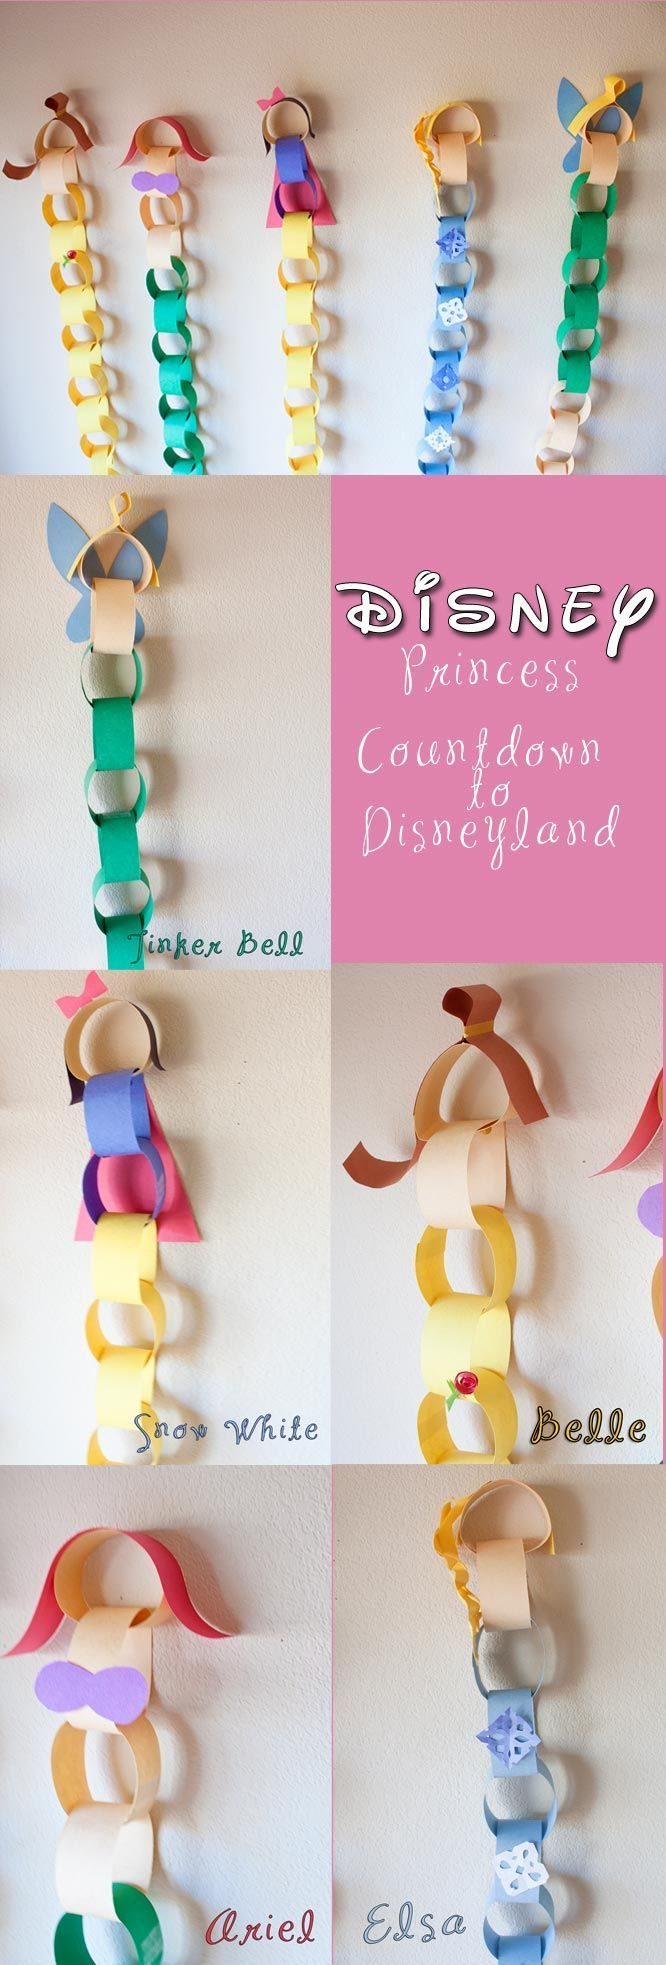 Countdown with the Disney Princesses